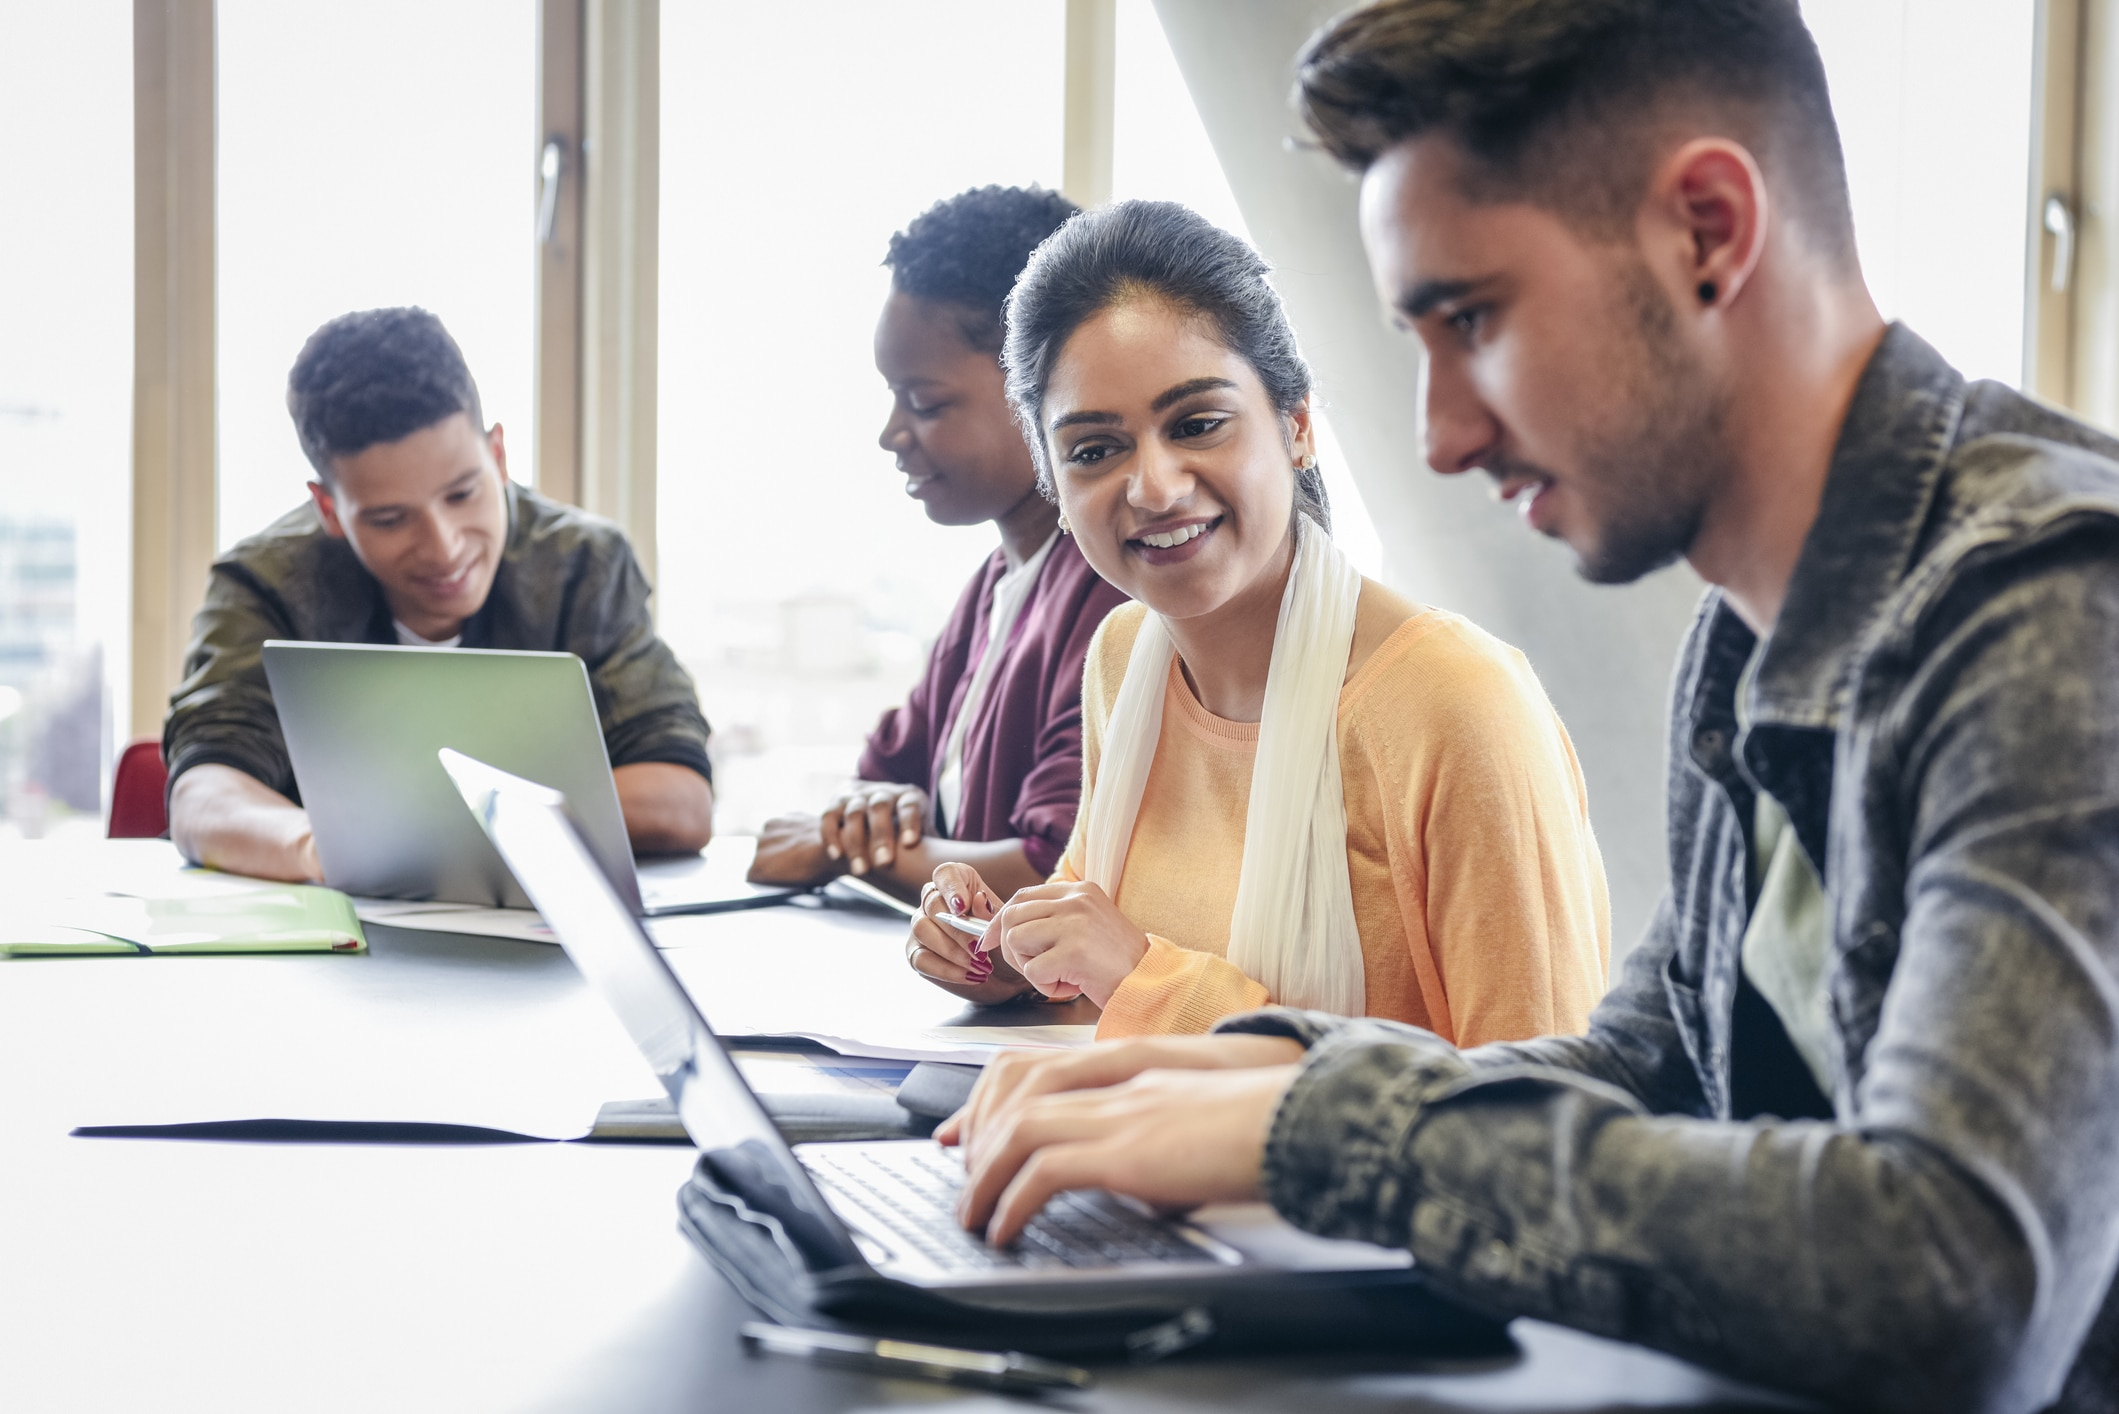 10 Easy Online Jobs for College Students